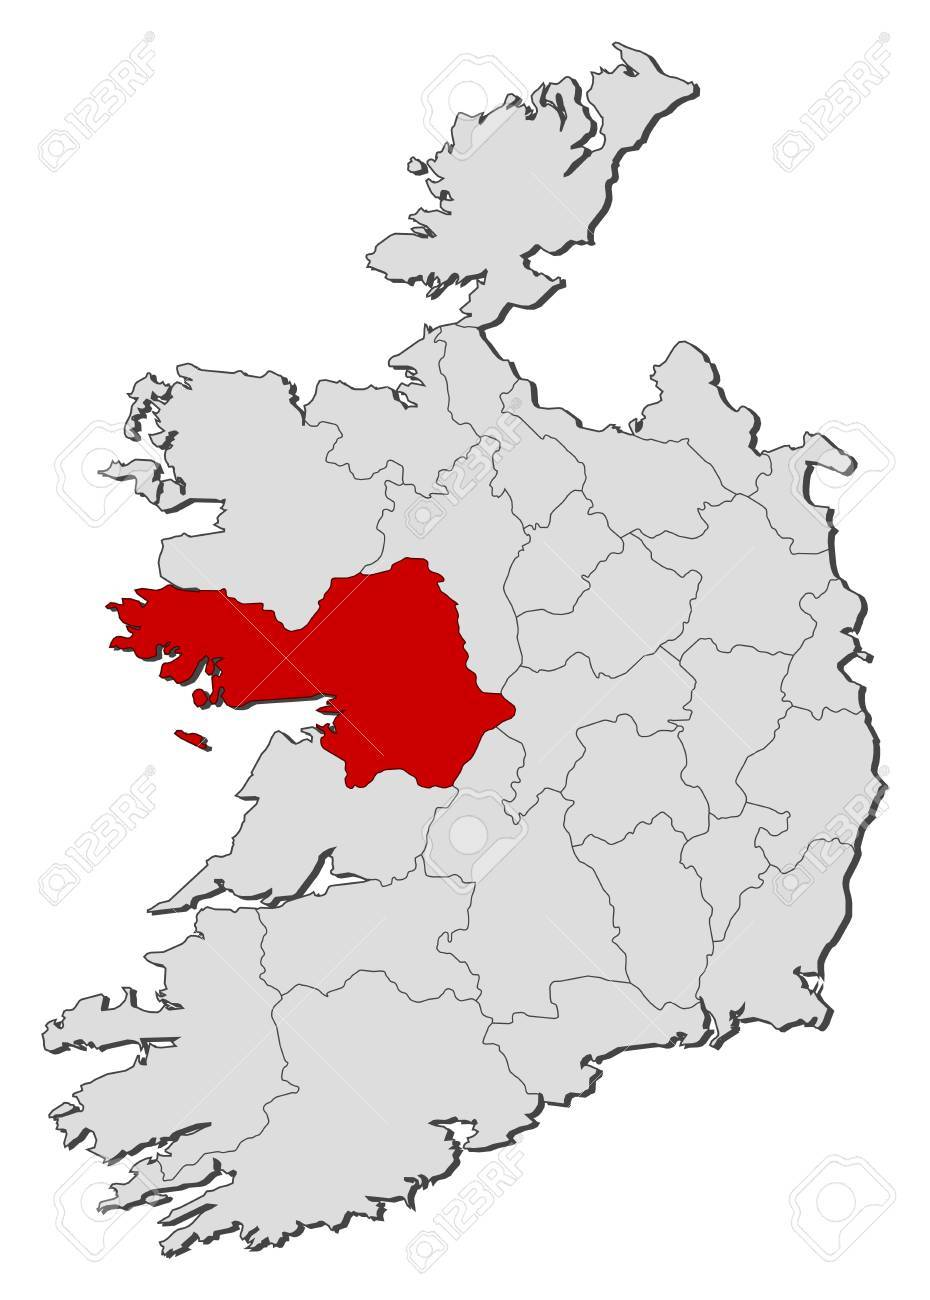 Map Of Ireland Galway.Map Of Ireland With The Provinces Galway Is Highlighted